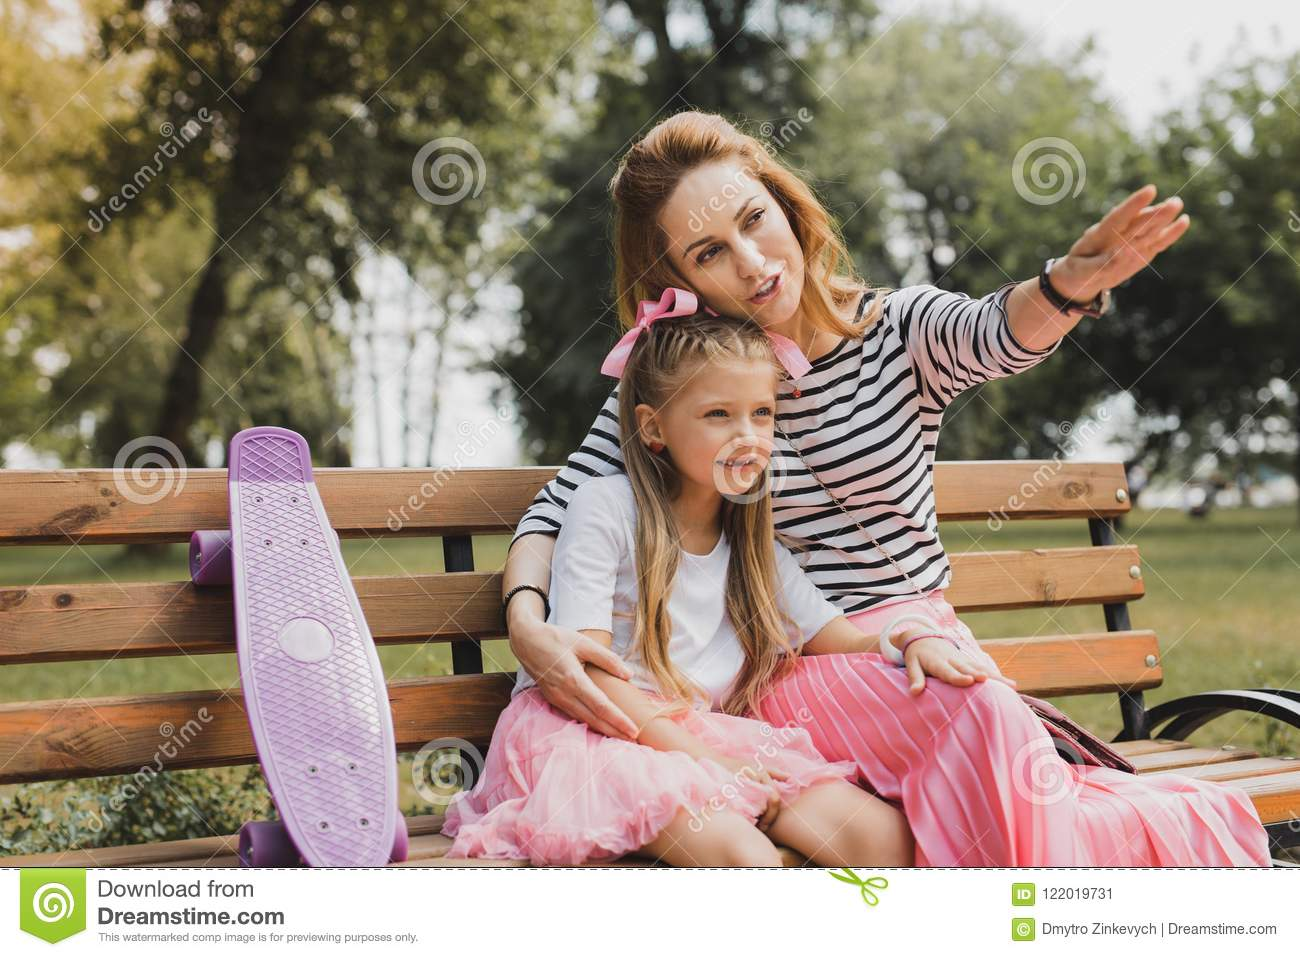 Blonde-haired caring mother showing her girl nice cafe